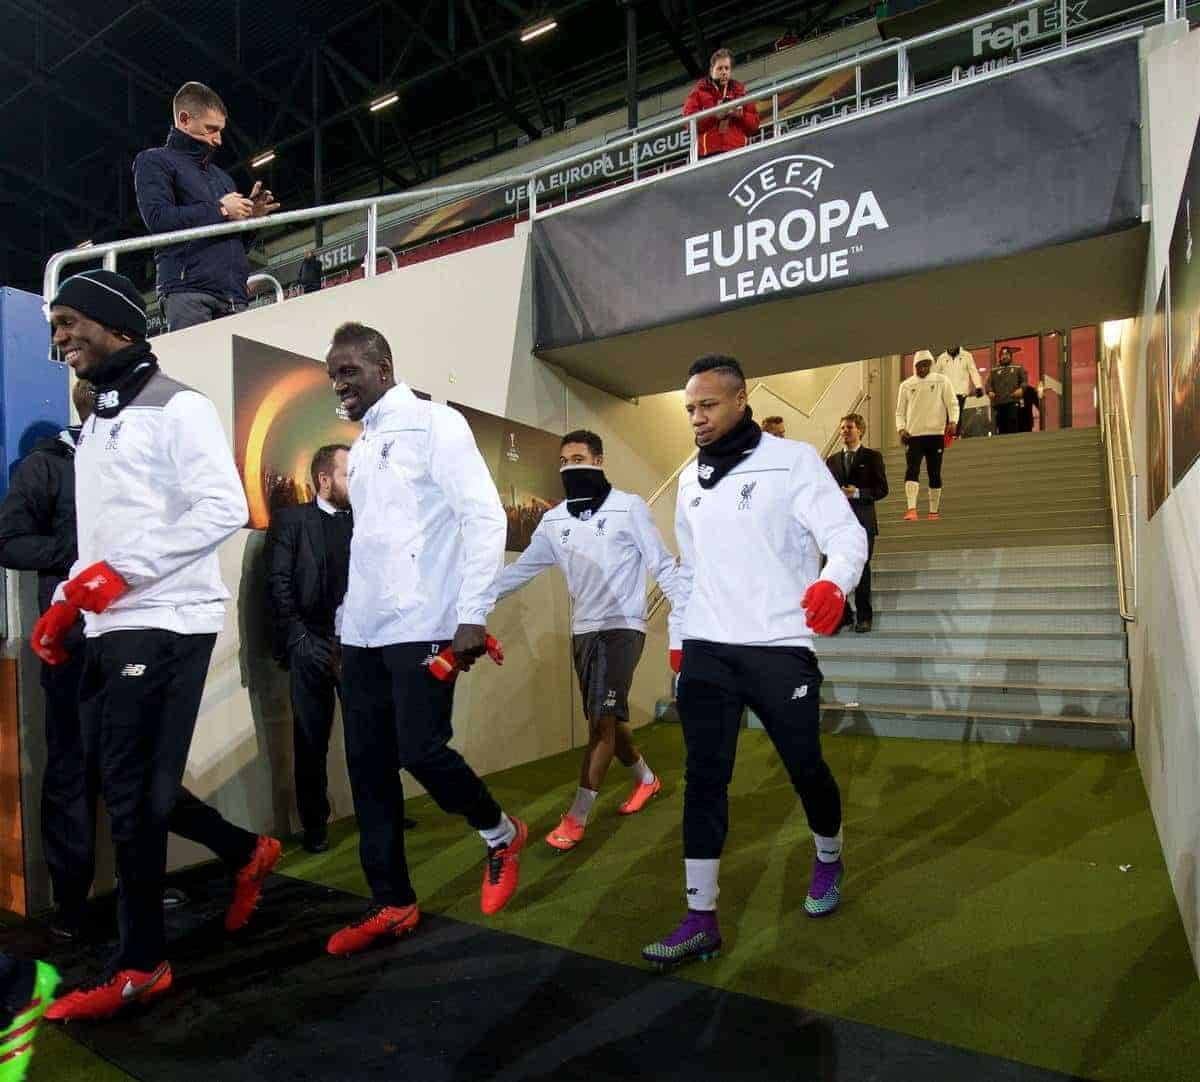 AUGSBURG, GERMANY - Wednesday, February 17, 2016: Liverpool's Christian Benteke, Mamadou Sakho, Philippe Coutinho Correia and Nathaniel Clyne walk out for a training session ahead of the UEFA Europa League Round of 32 1st Leg match against FC Augsburg at the Augsburg Arena. (Pic by David Rawcliffe/Propaganda)